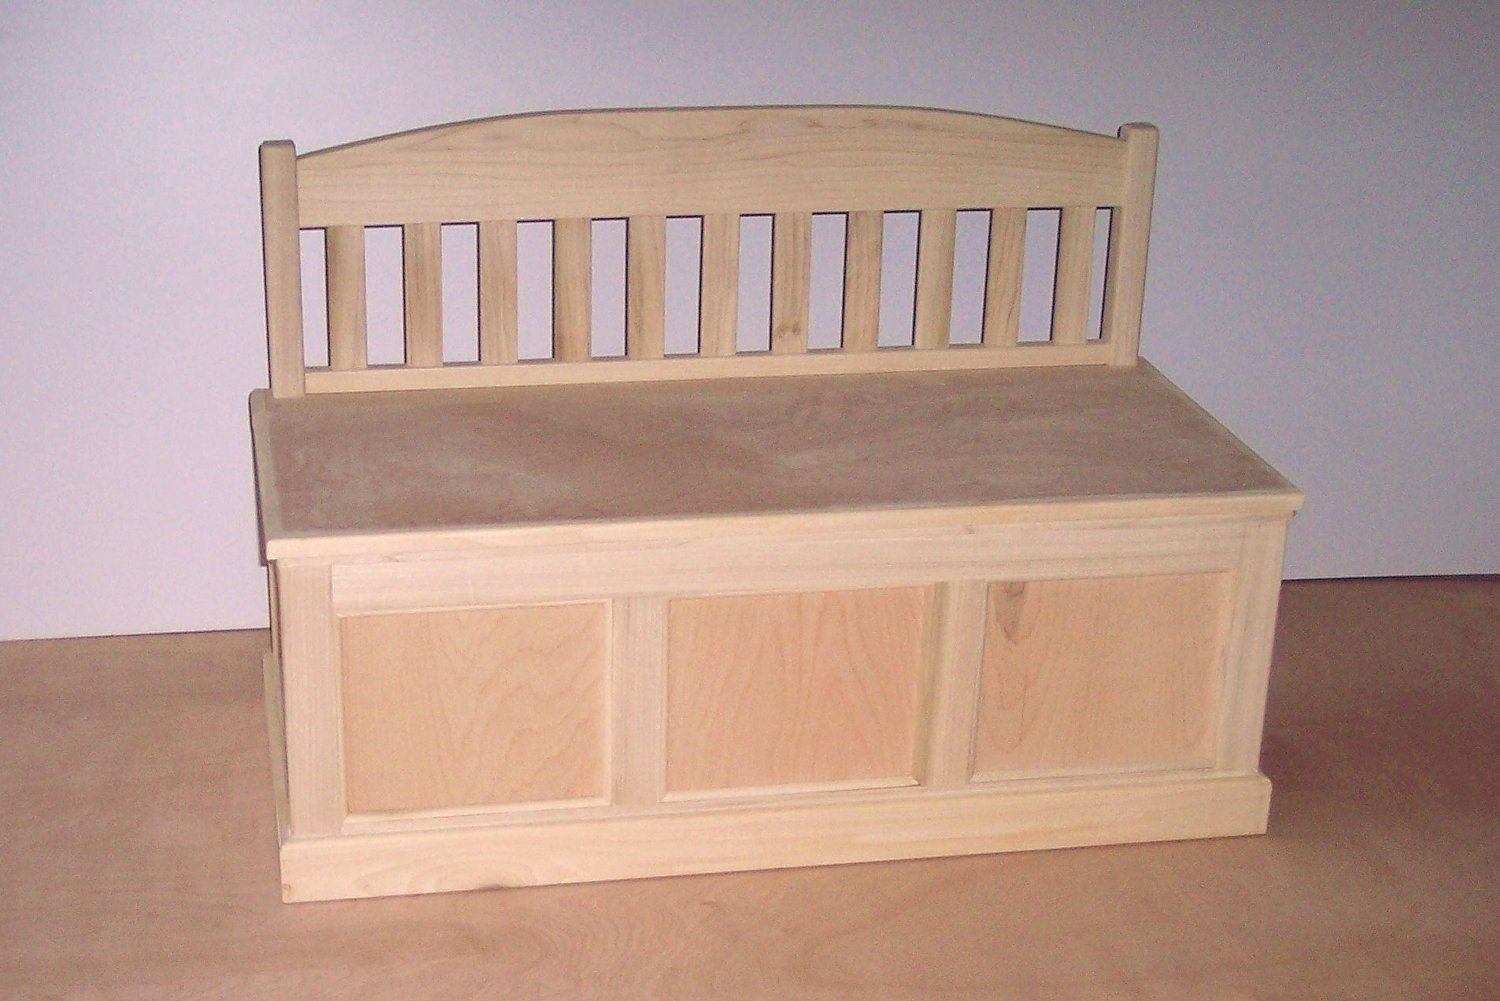 Popular Items For Wooden Toys On Etsy Wooden Toy Boxes Wooden Toy Chest Wood Toy Box